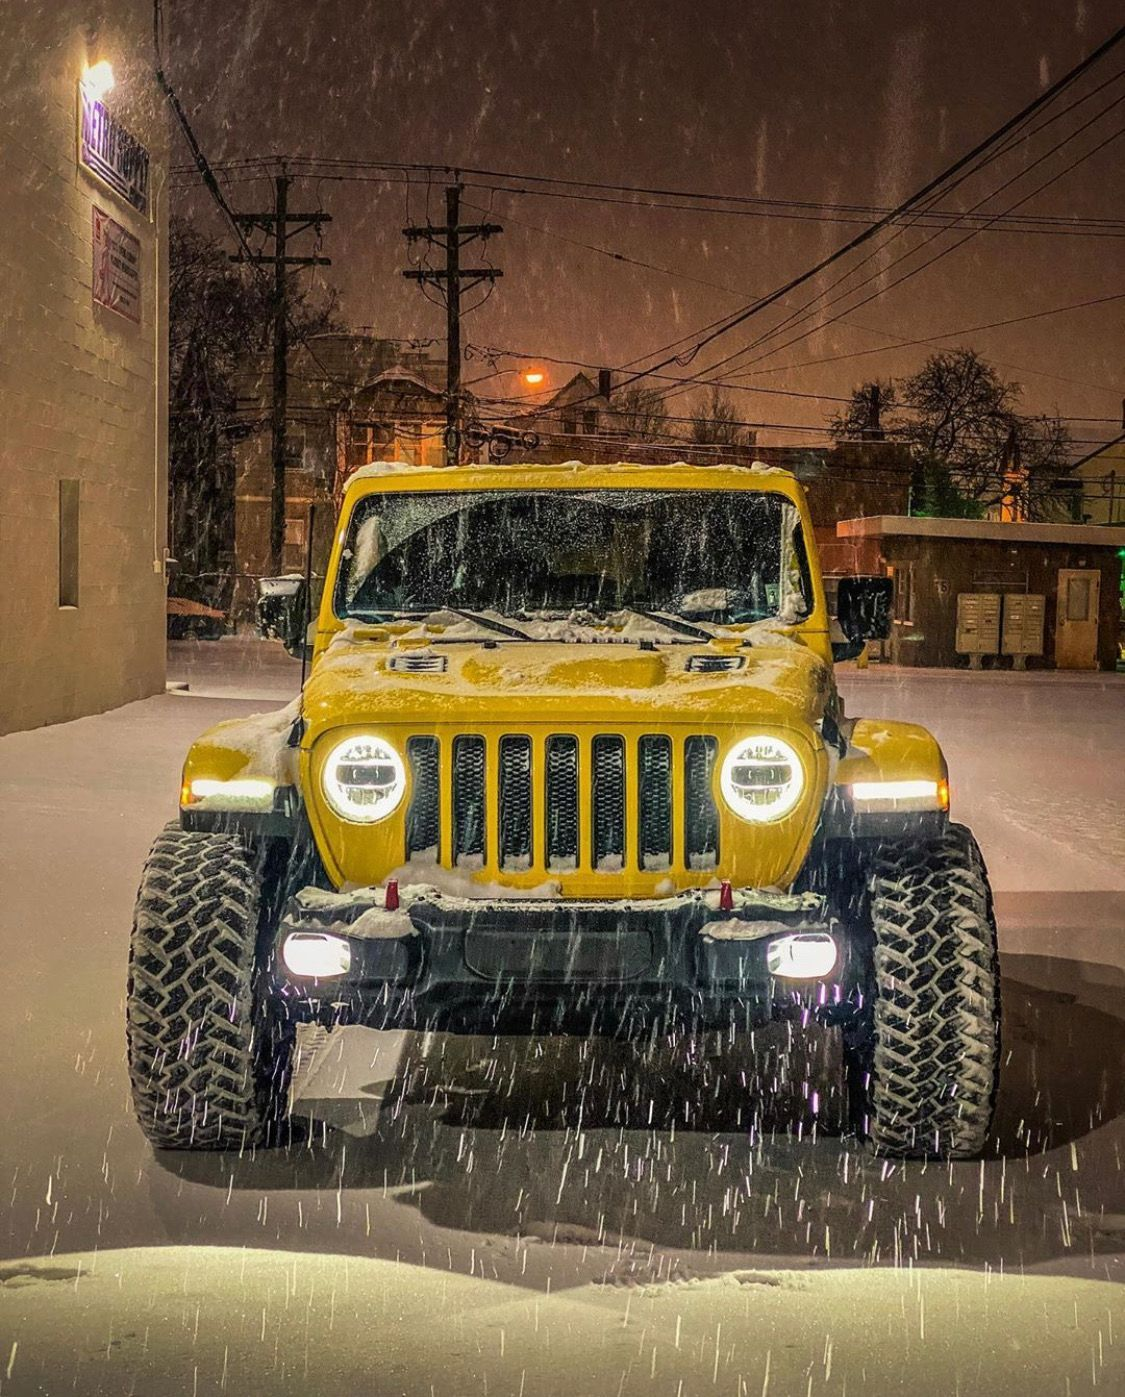 Jeep Wrangler Rubicon Jl With Led Headlights And Fog Lights In The